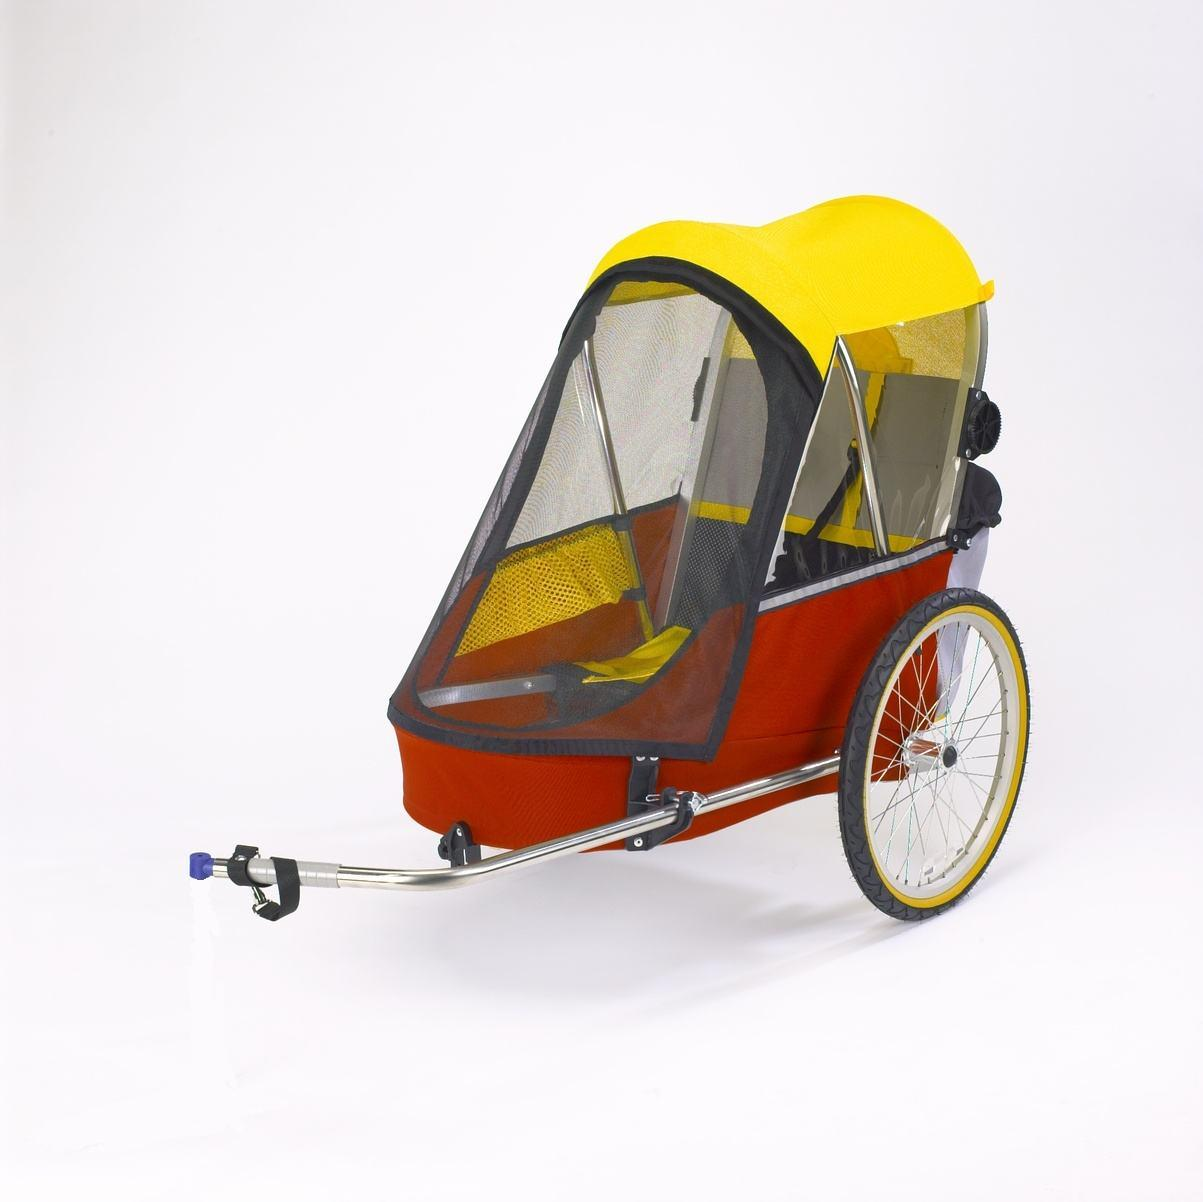 Premium single bicycle trailer red yellow